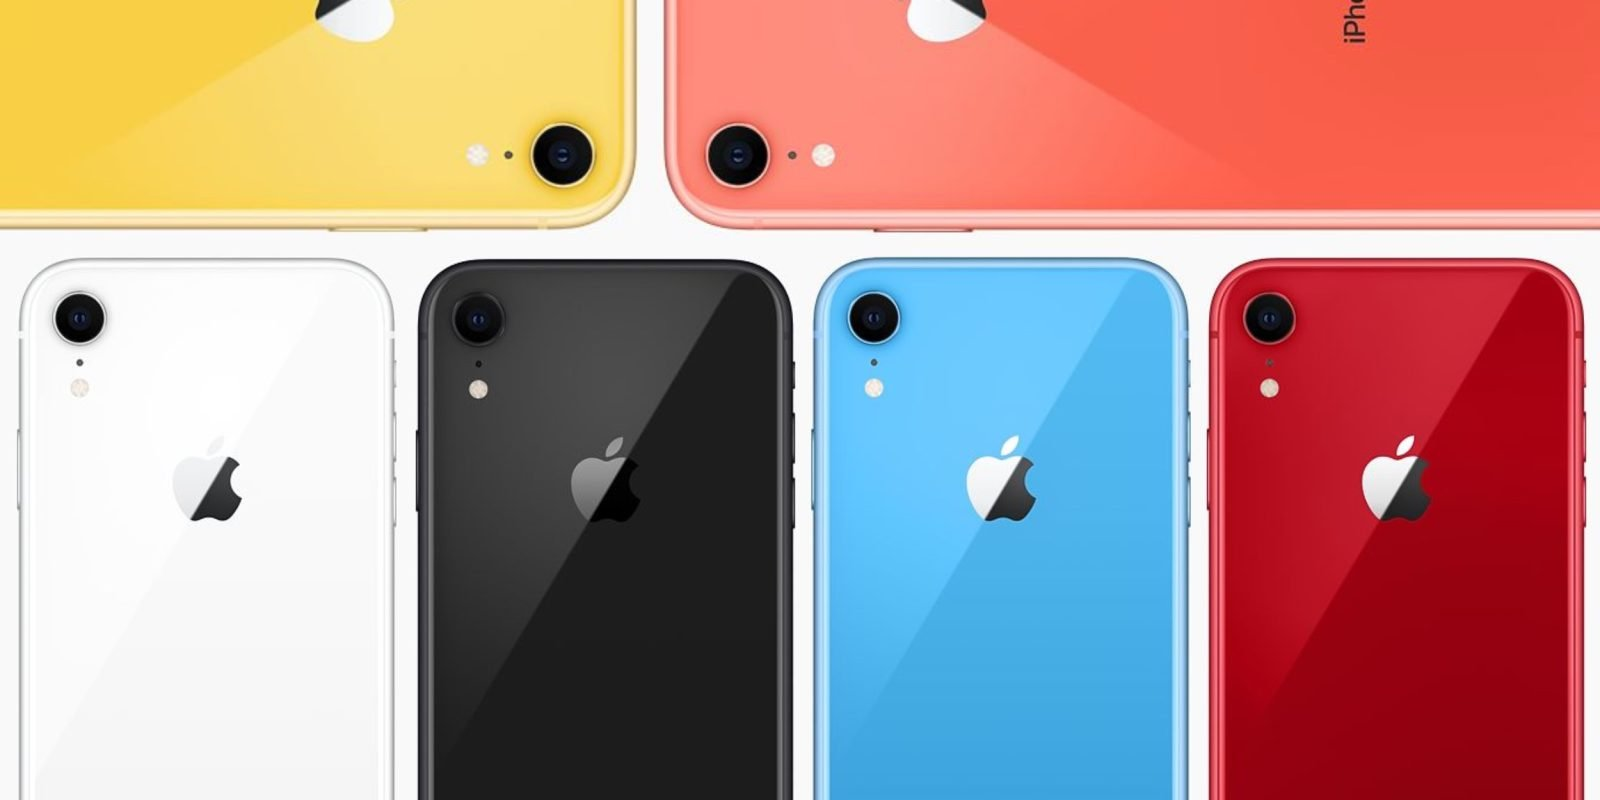 apple, iphone, iphone xr, iphone news, iphone xr baku, iphone xr price